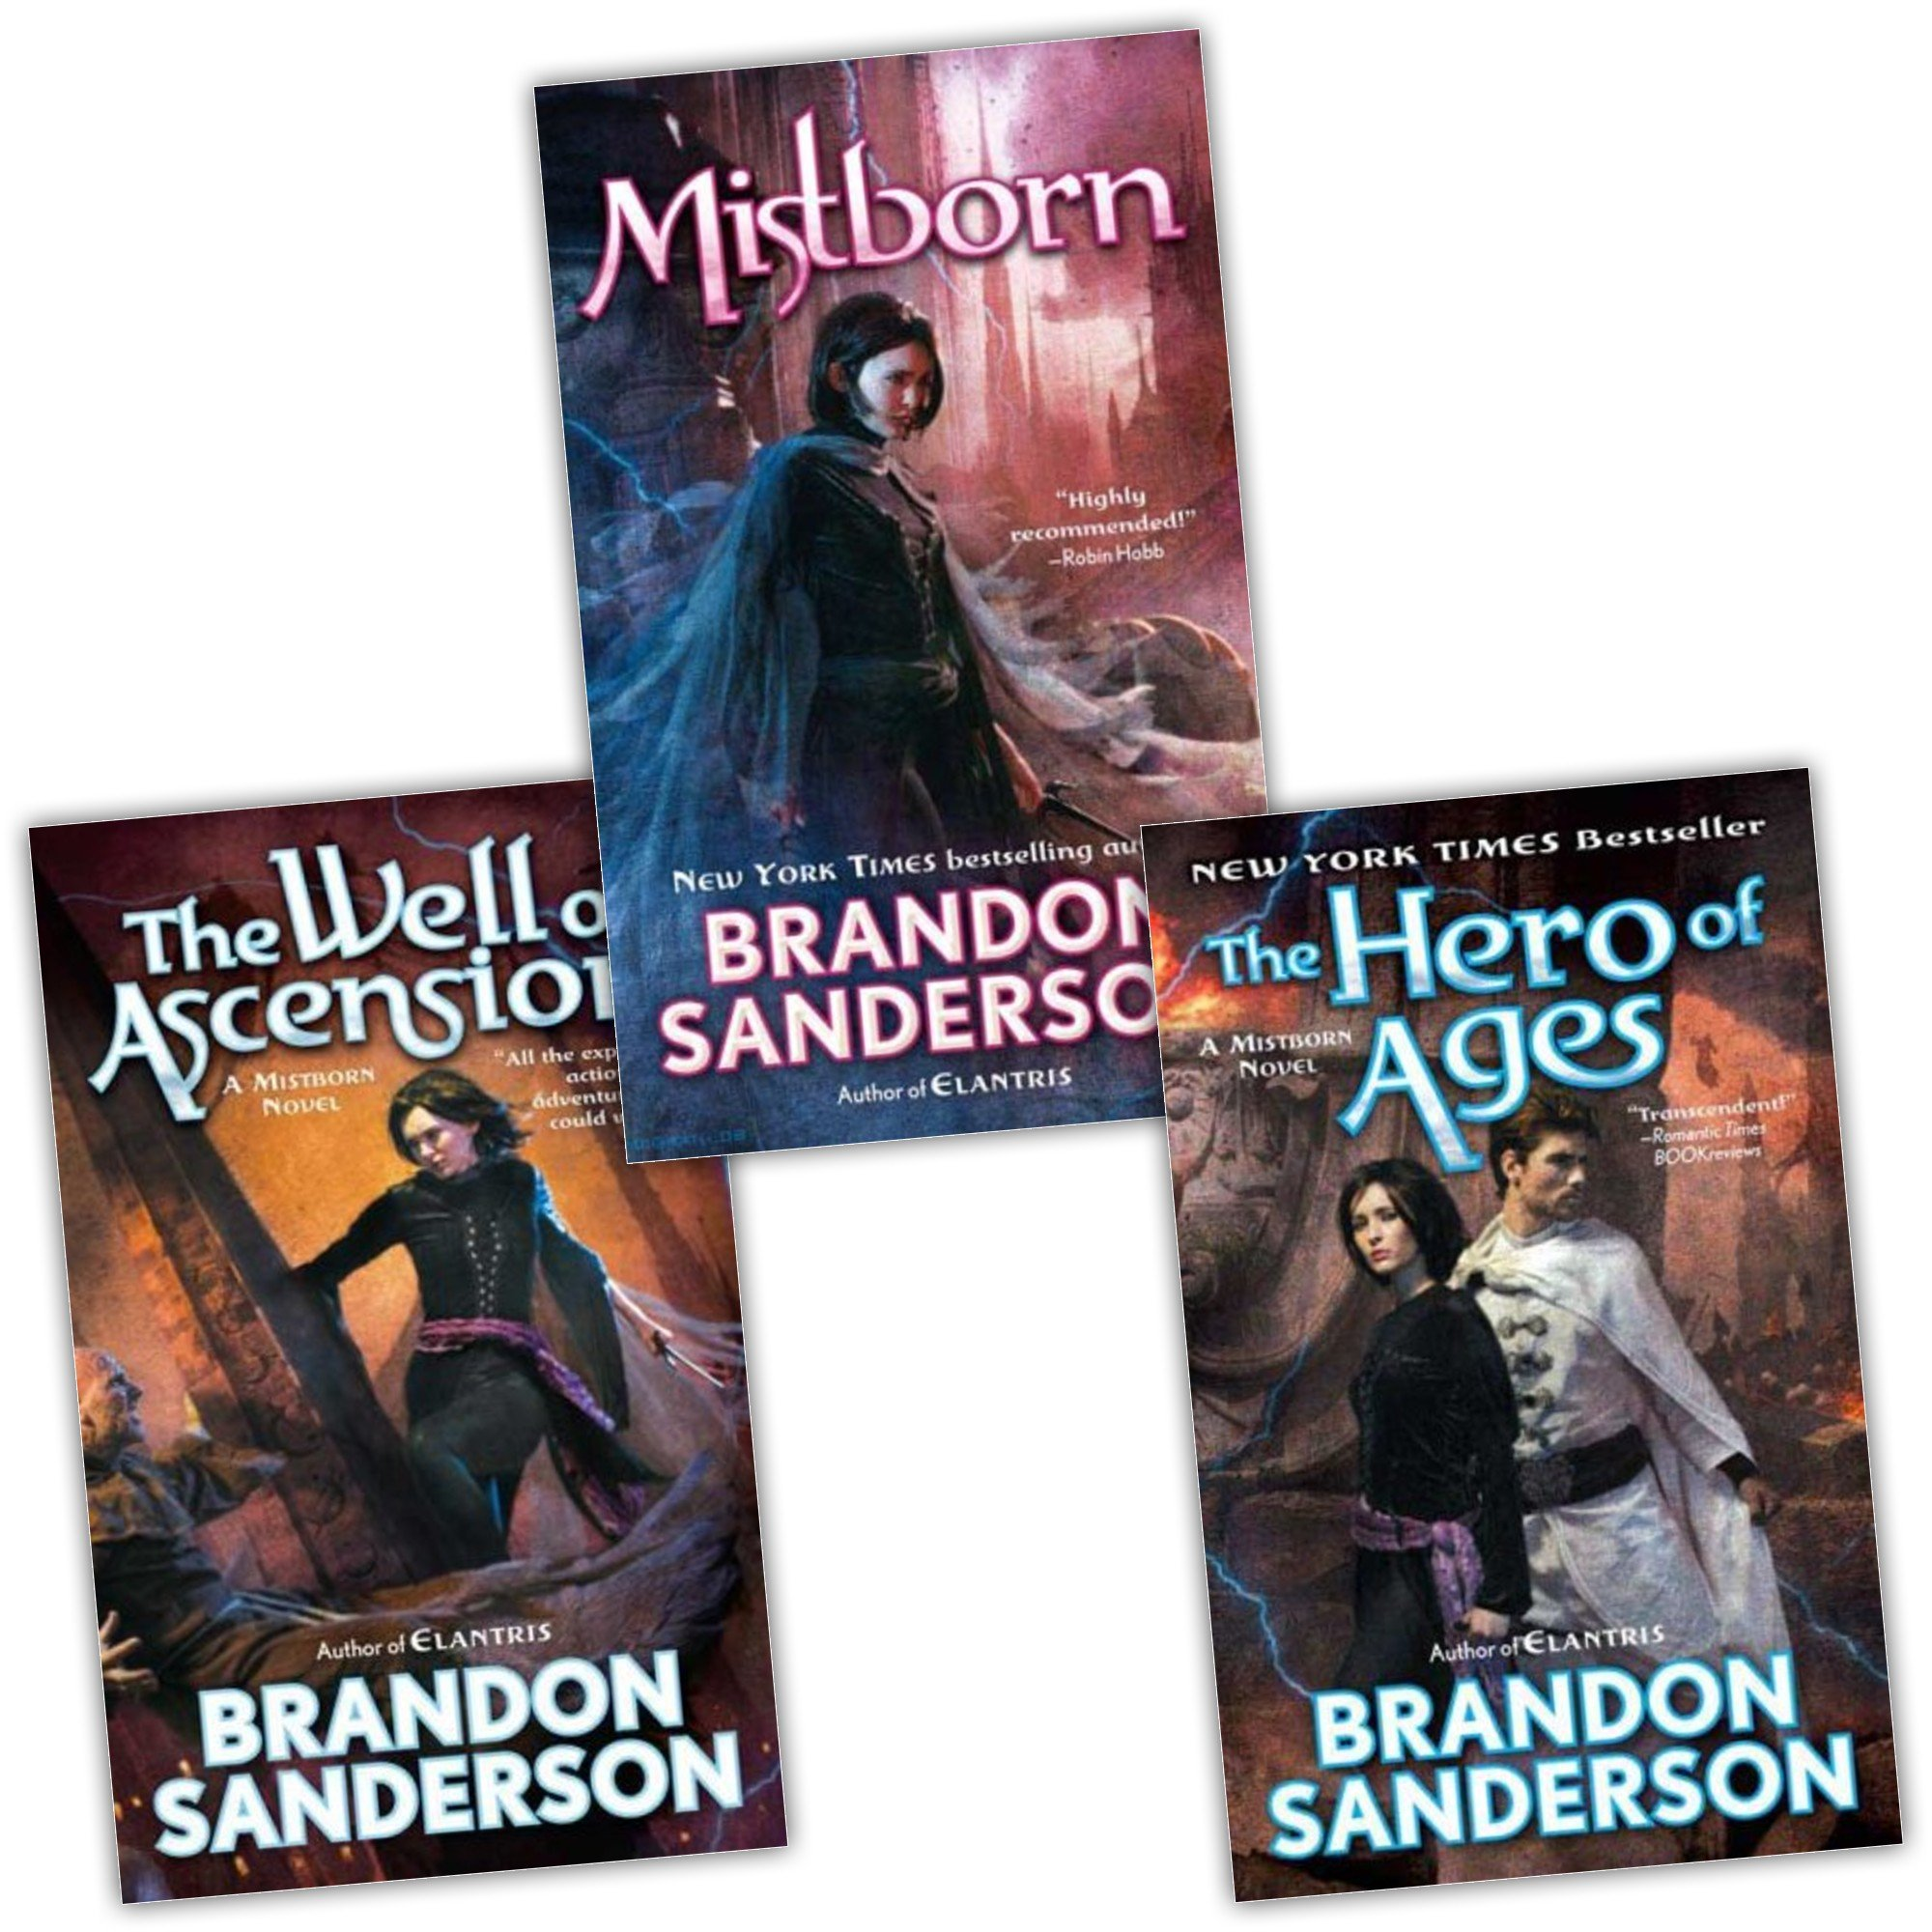 Brandon Sanderson Mistborn 3 Books Collection Pack Set The Well of Ascension...: Amazon.es: Libros